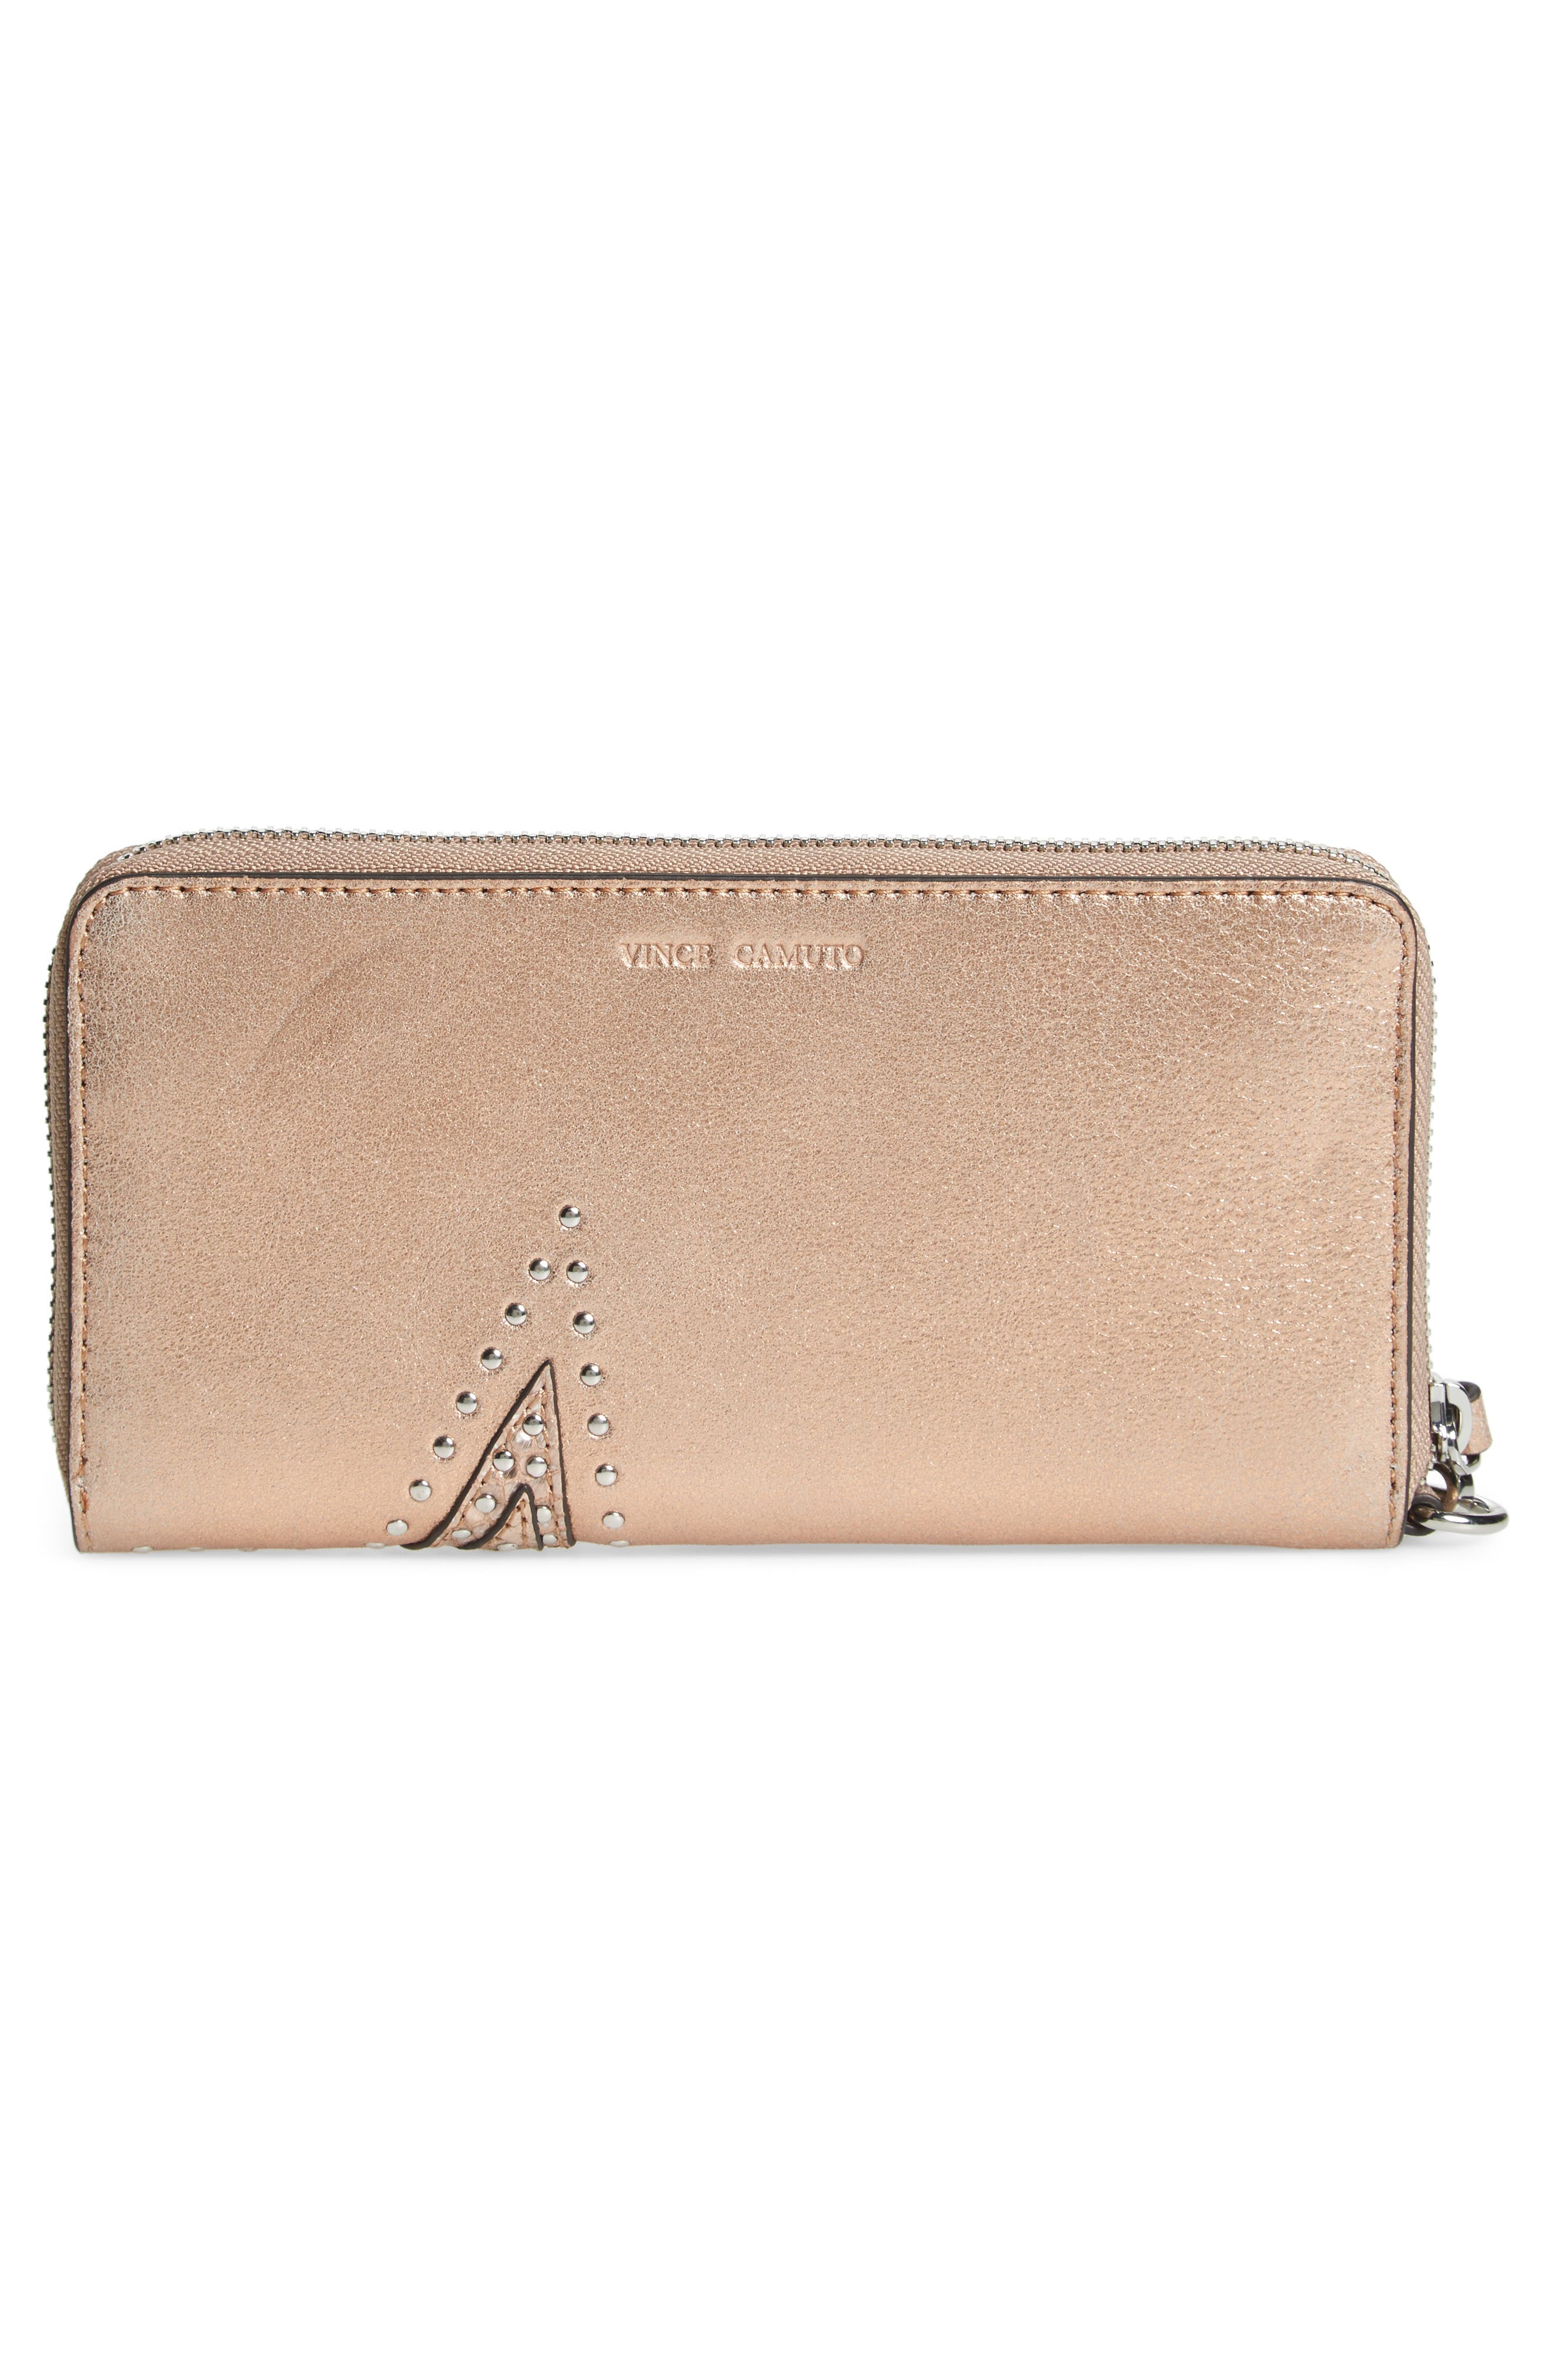 Taz Leather Zip Around Wallet,                             Alternate thumbnail 3, color,                             ROSE GOLD